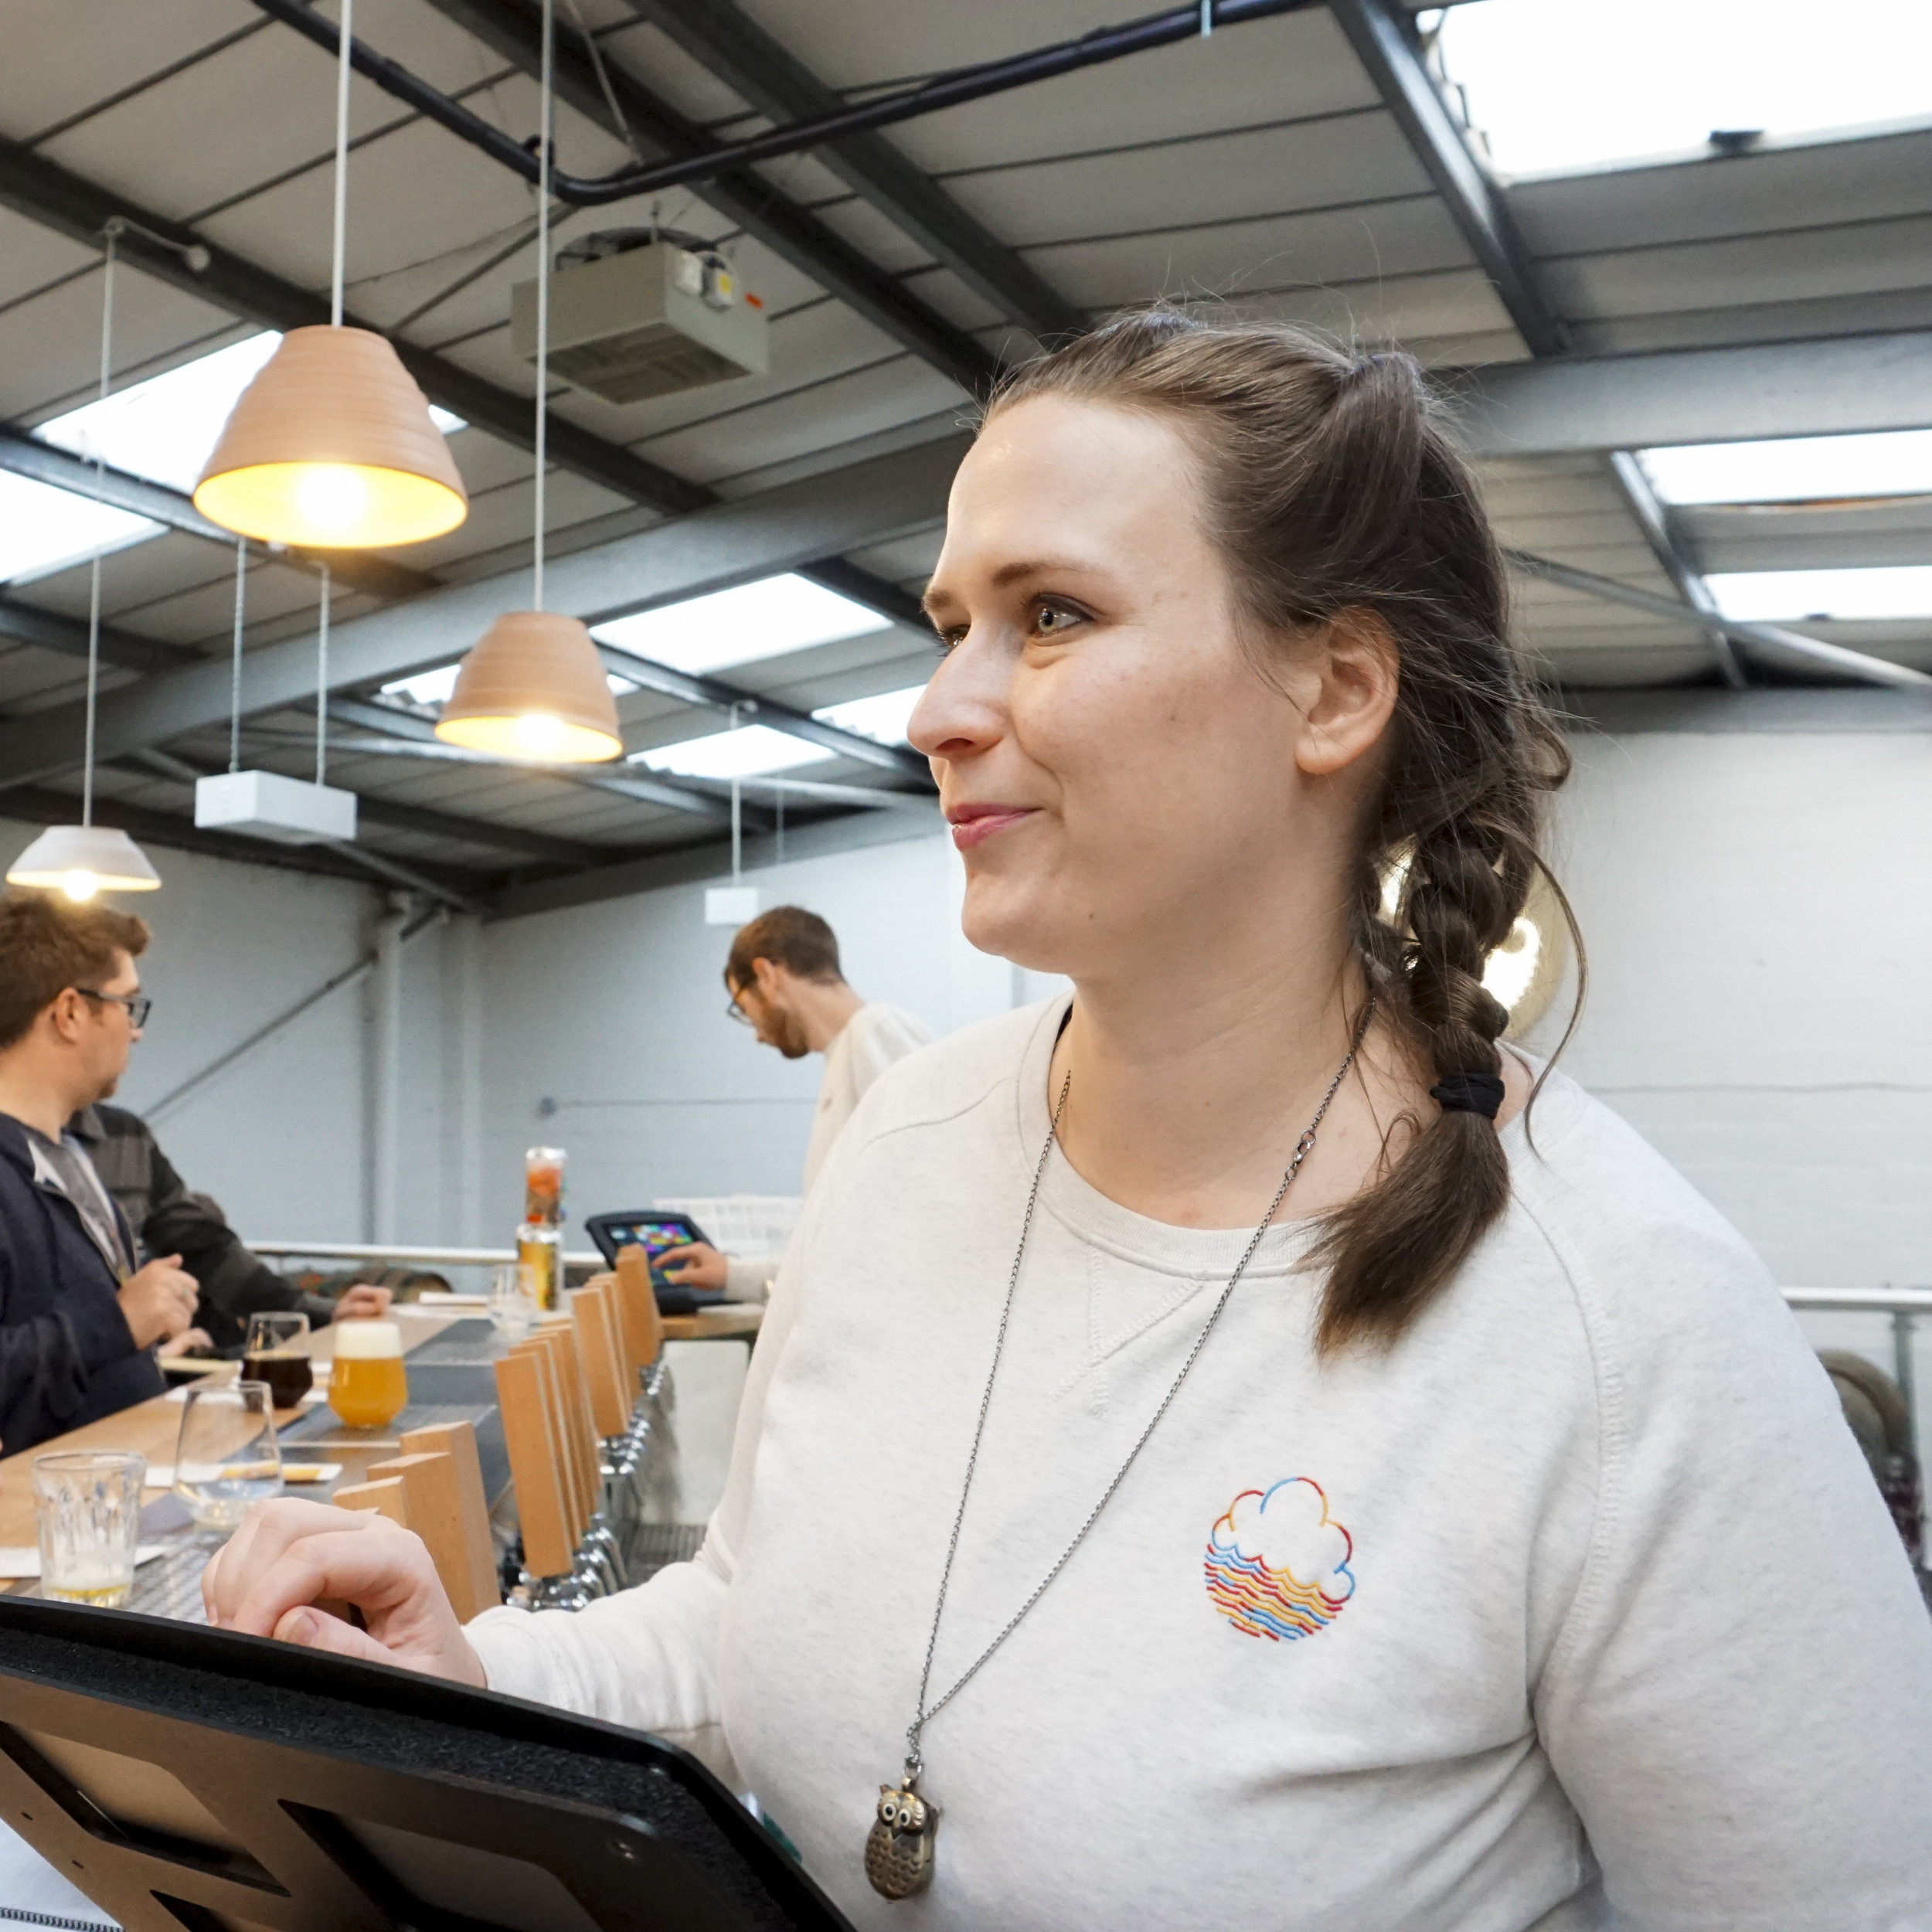 Zsofi Karolina Denk — Full Time Unit 9 Tap Room Staff   I have been working within the craft beer industry for many years now. I first went down to a beer festival called Főzdefesz, which was the first Hungarian Craft Beer Festival, and I met the festival organiser Daniel Bart, who was planning to open up the first craft beer bar in Budapest. I started to work there at Élesztő (Yeast) as a bartender and manager. We heavily promoted the Hungarian craft beer scene. I attended many food and drink festivals with a cool VW T1 moving bar.  A few years later, my partner and I moved to Manchester and continued to work within the industry, first in the Marble bars, and later at Café Beermoth. And now I work here at Cloudwater's tap room.  Beer is all over my life. I love to see the creativity behind collaborations, and how amazing it is that you can have so methods of brewing, ranging from classic elegant recipes, or new and exciting creations. My favourite beer experience is when Sam Calagione went down to Cairo to forage some native Egyptian saccharomyces yeast, and rebrewed an ancient recipe they found written with Hieroglyphs in a pyramid. How cool is that?!   Desert island beer:  I love the big chocolatey stouts, but the favourite is Or Xata from The Bruery